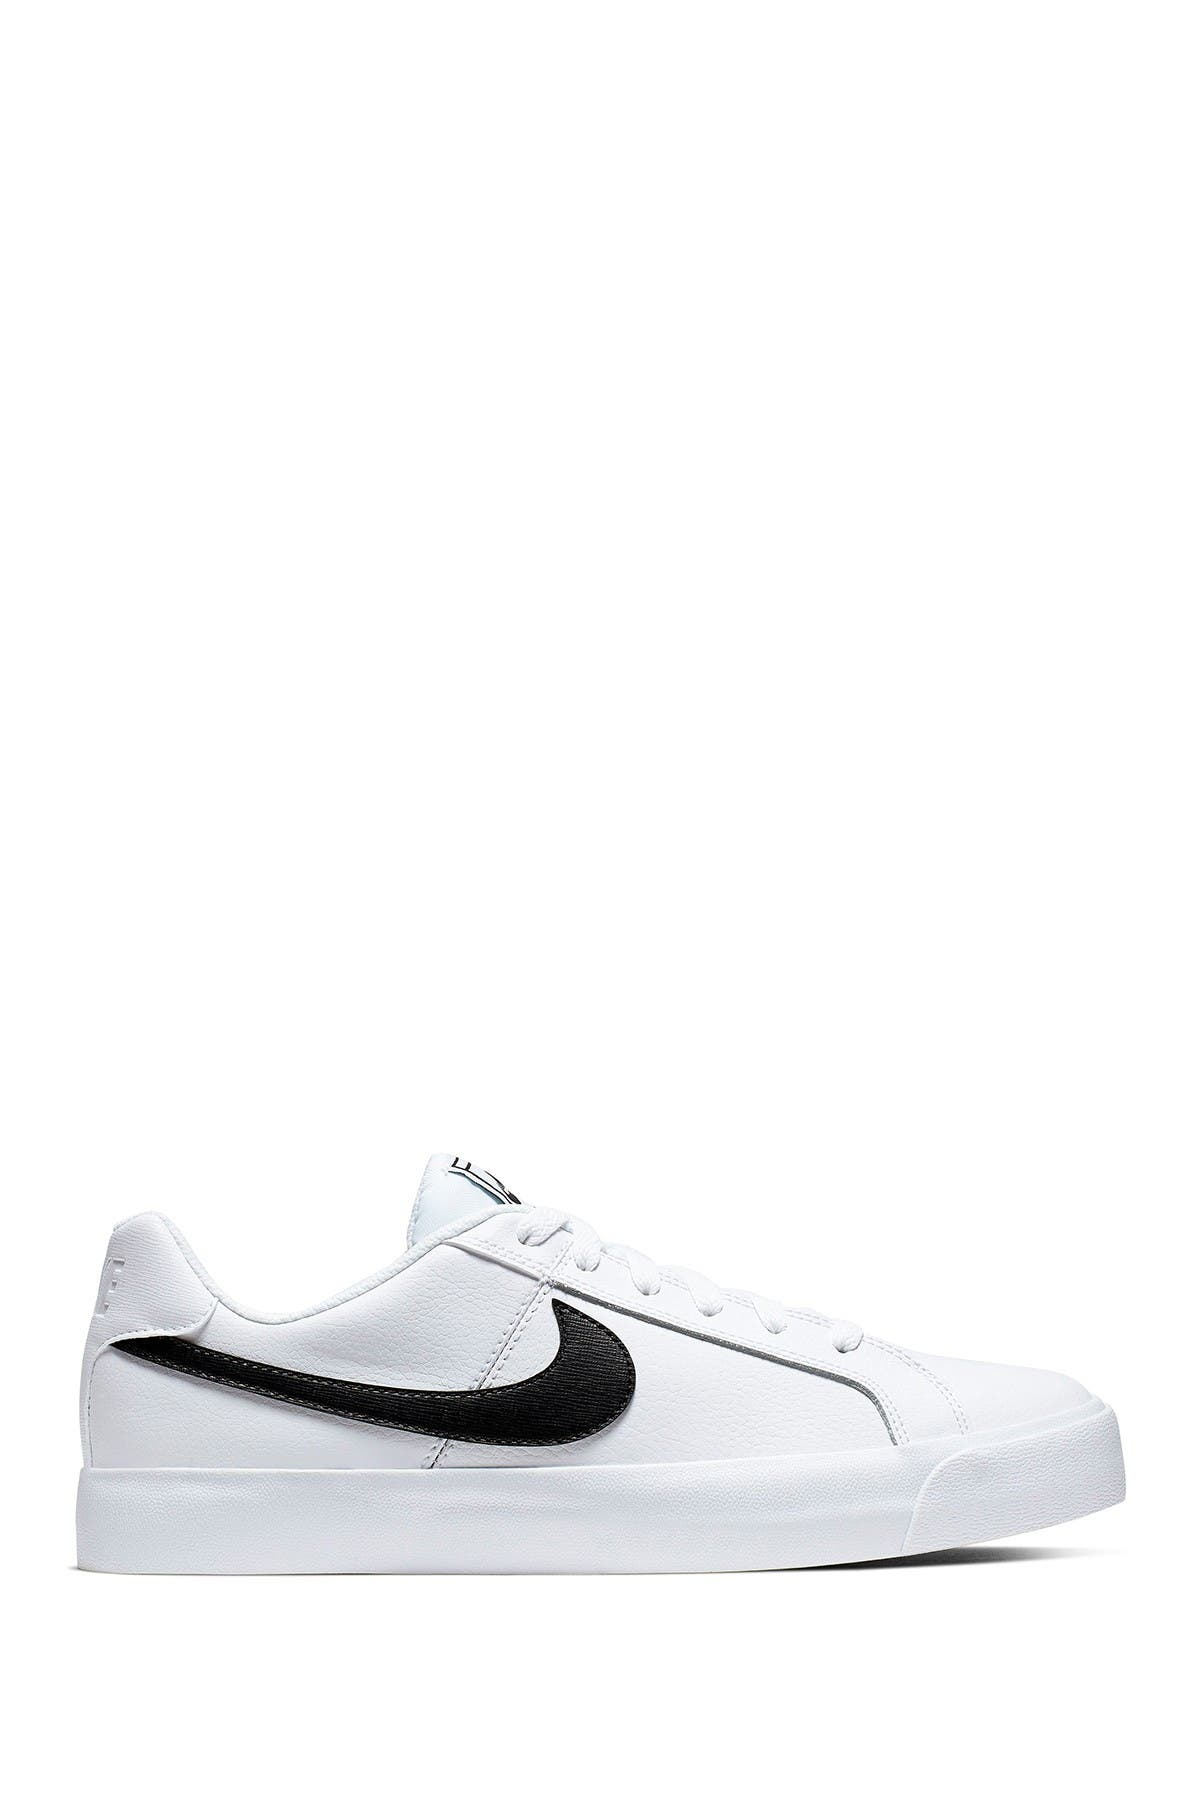 Image of Nike Court Royale Sneaker